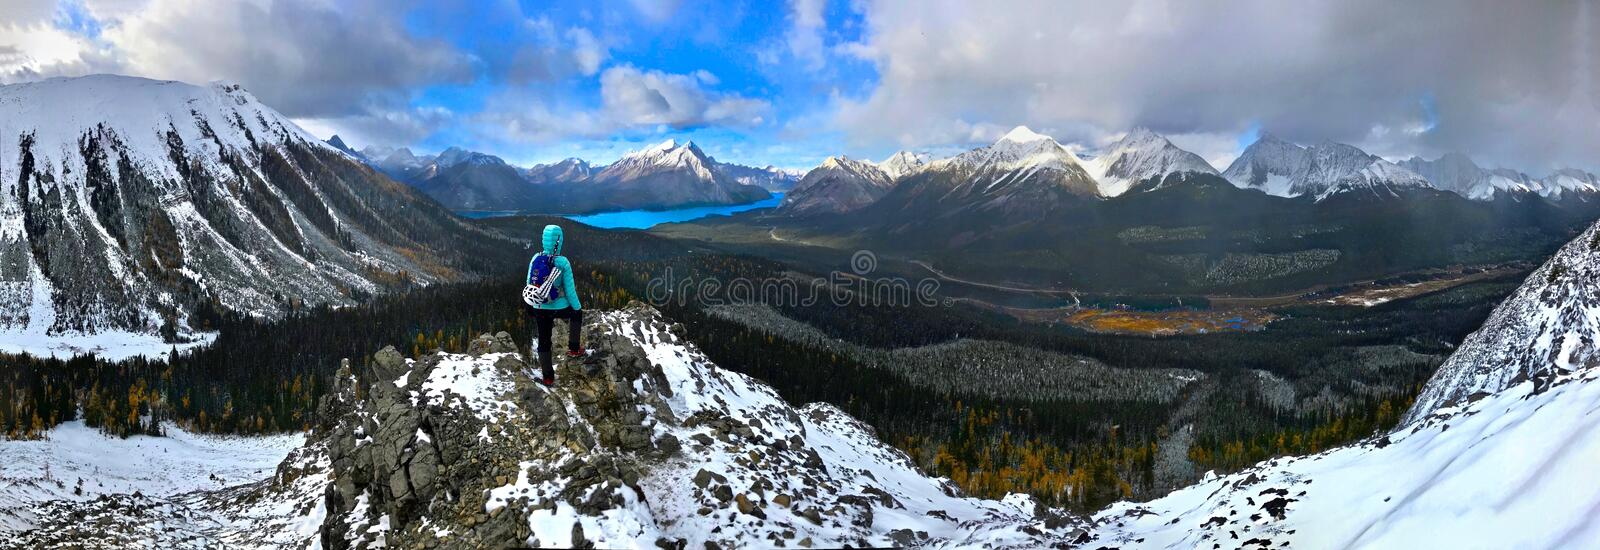 Woman on the mountain top looking at view of snow capped peaks and turquoise lake. royalty free stock image